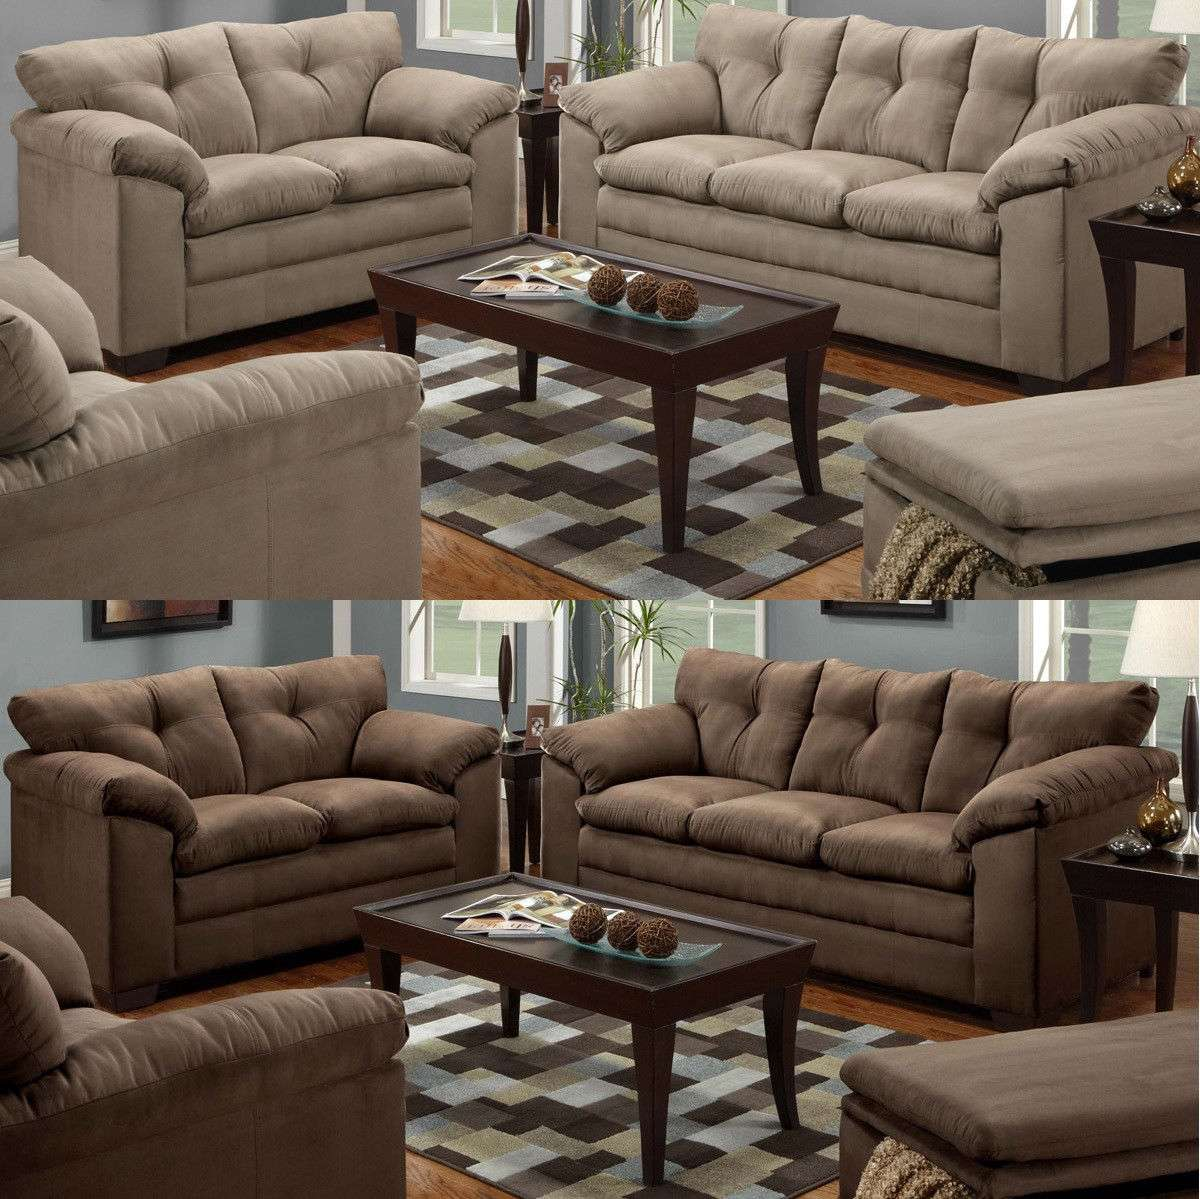 Sofa Loveseat 2 Piece Living Room Set Microfiber Sofa